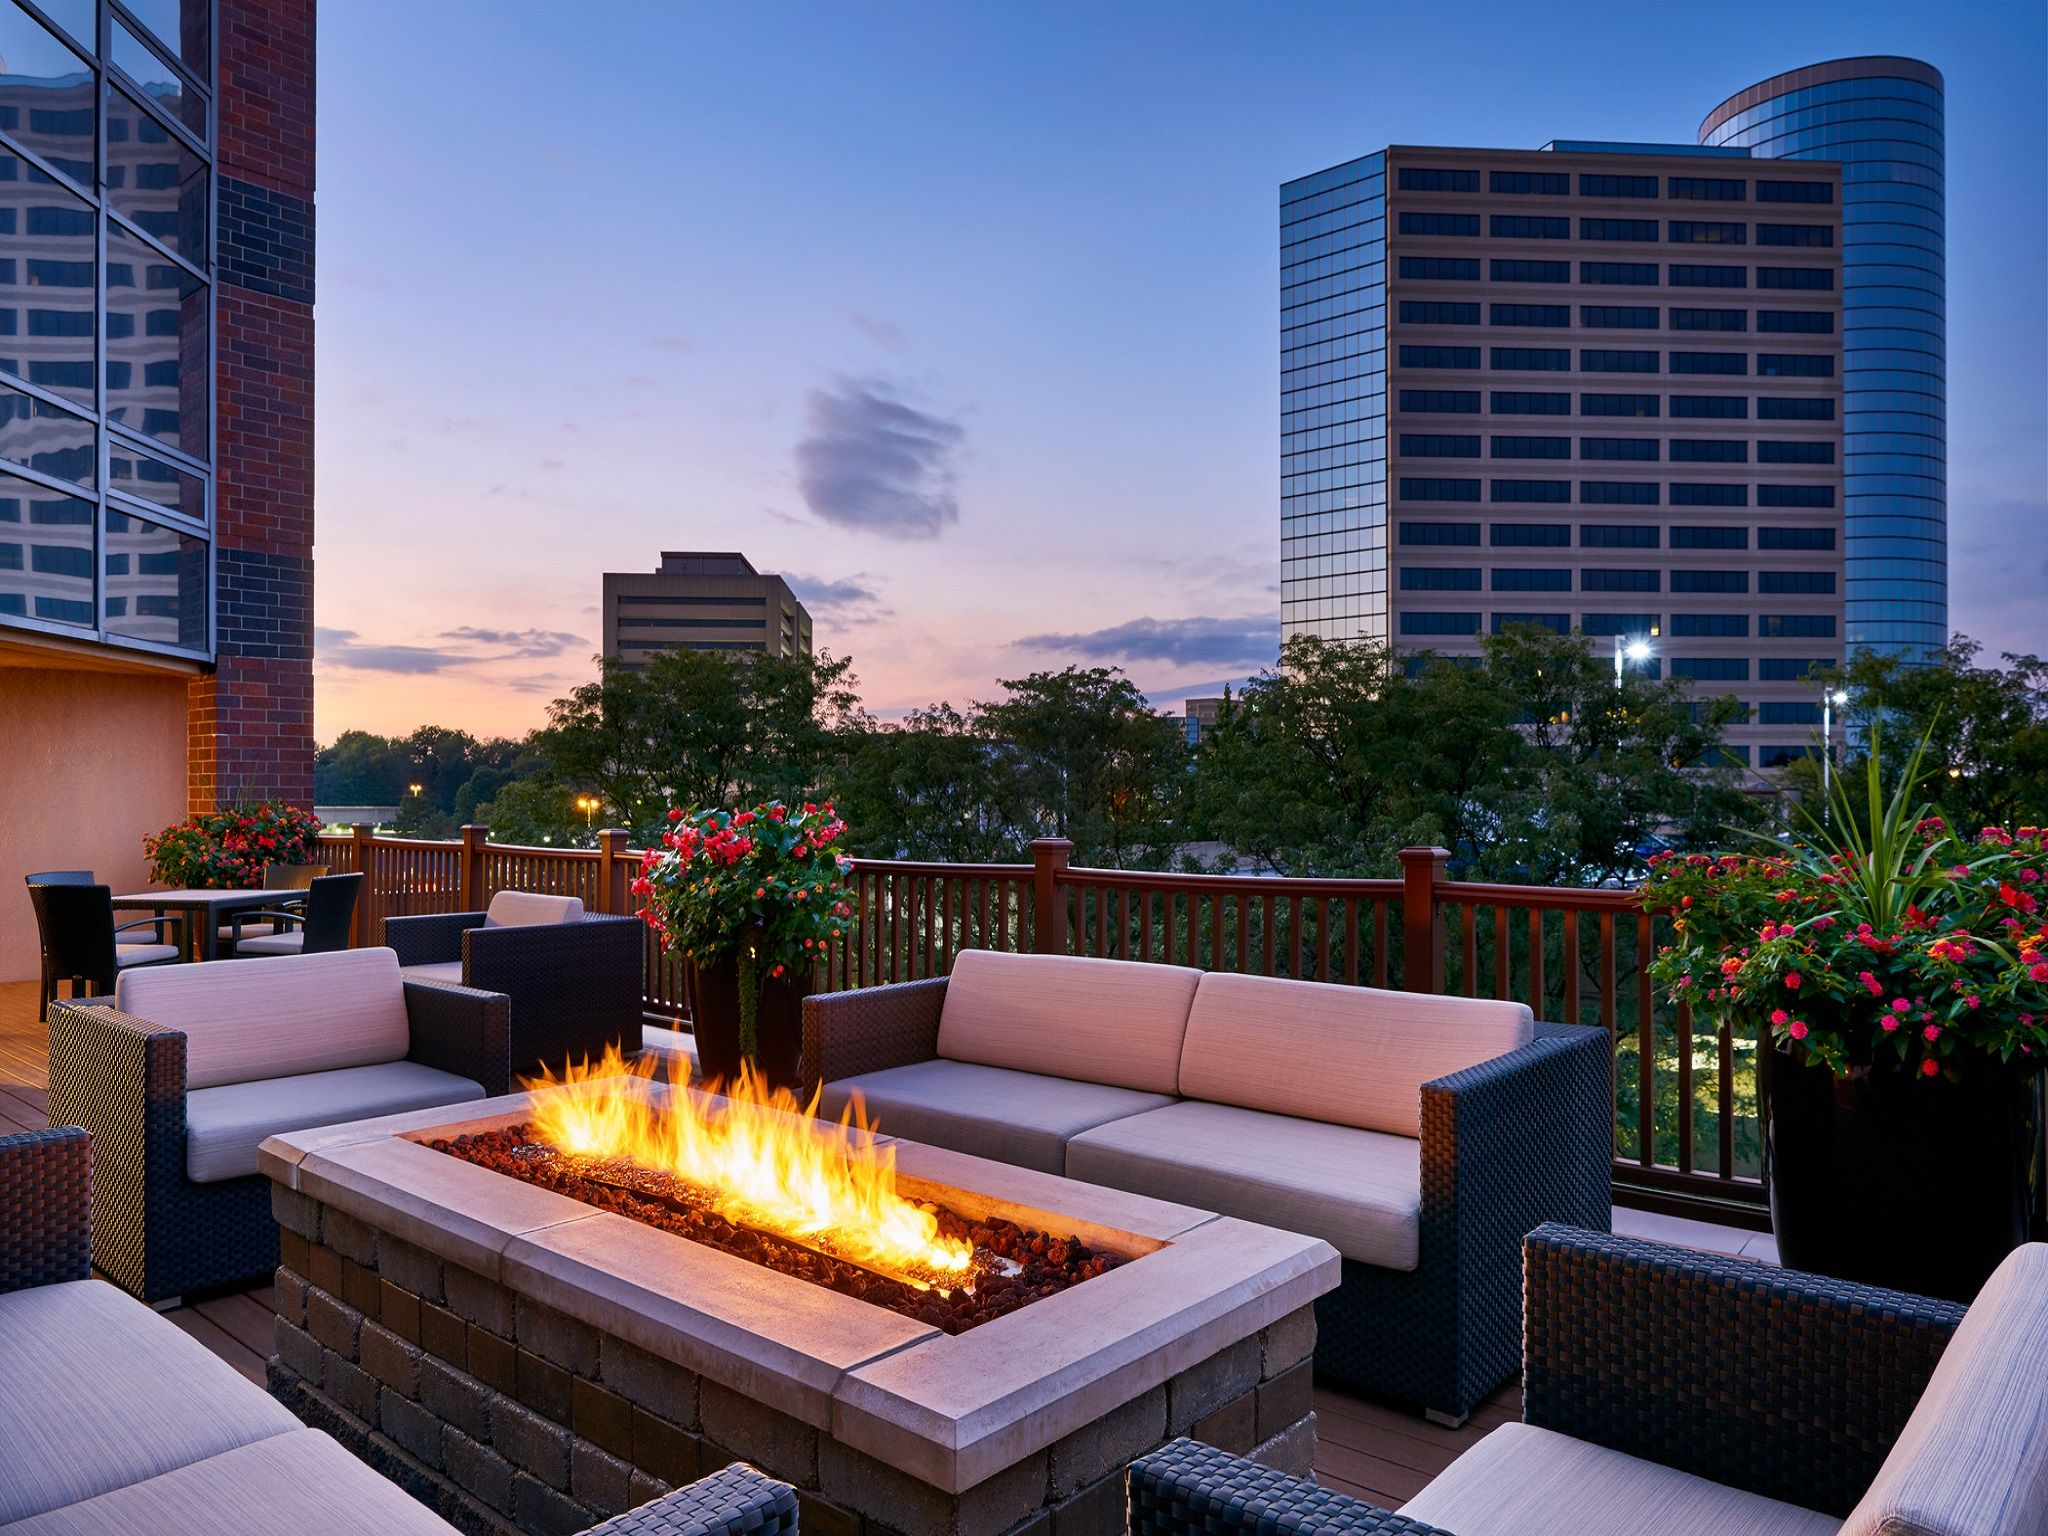 Event Space Indianapolis | Outdoor Indianapolis Meeting Space